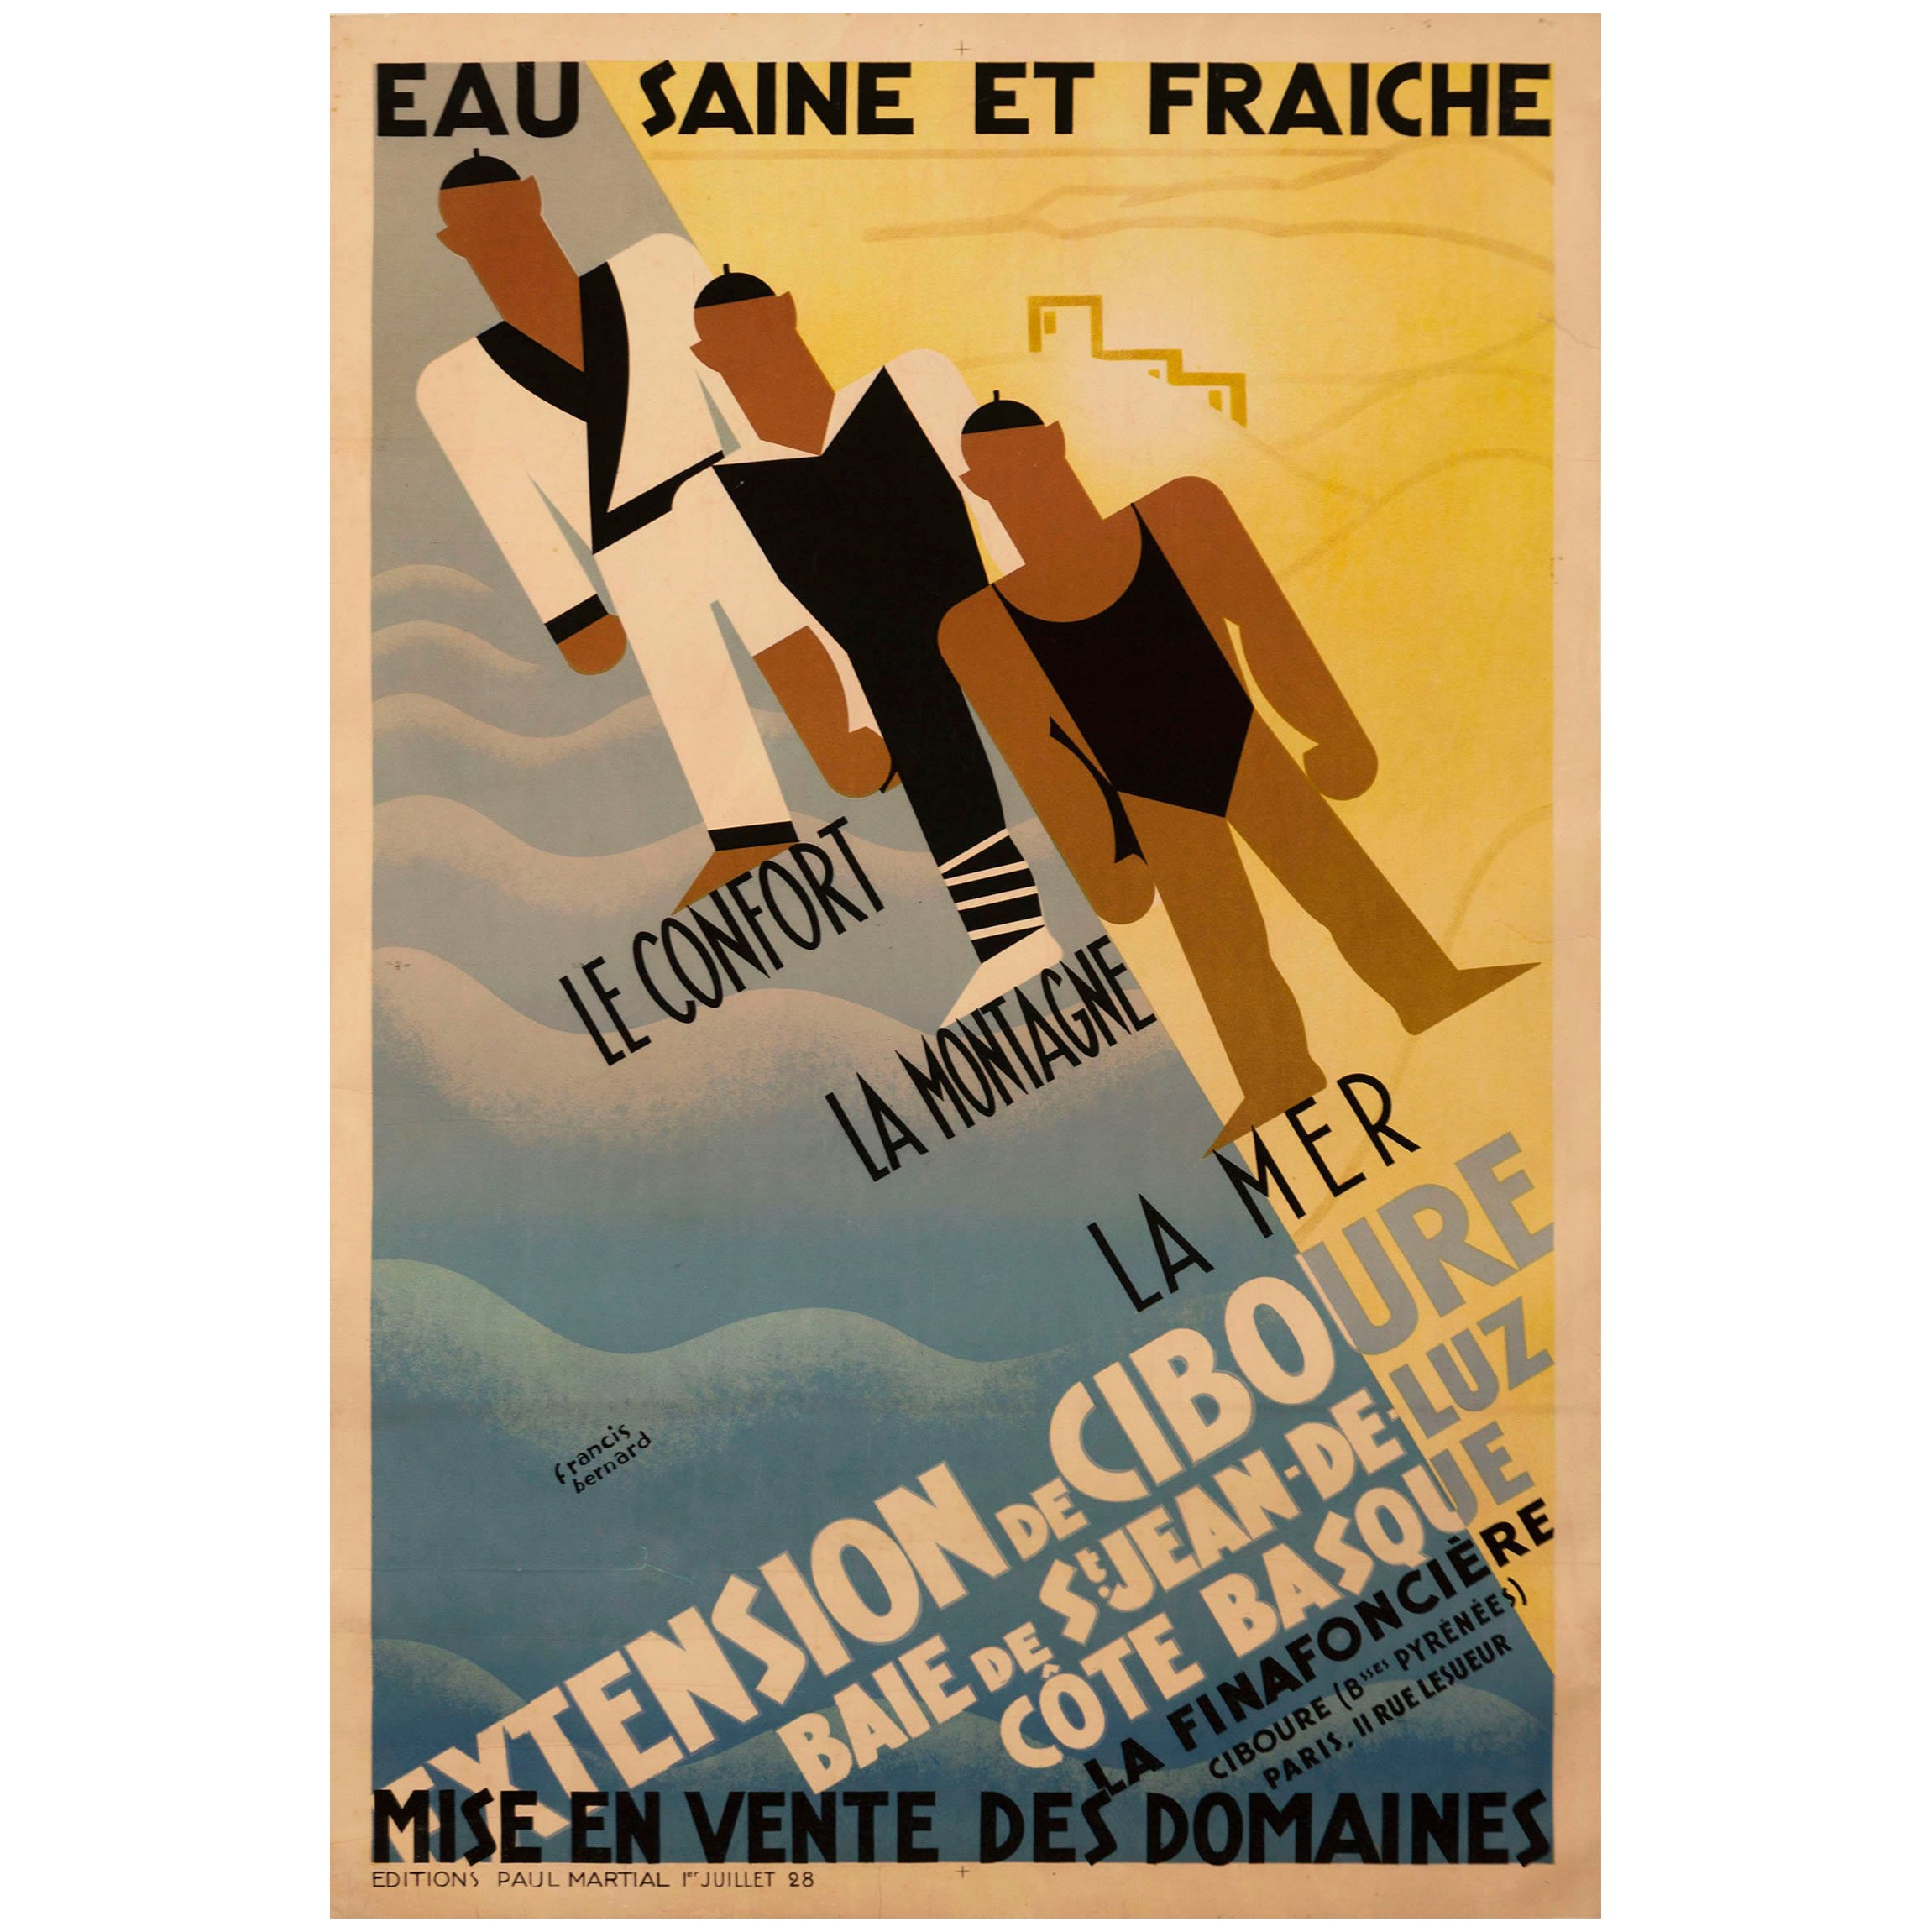 Deco Poster Original French Art Deco Poster For Ciboure On The Cote Basque By Bernard